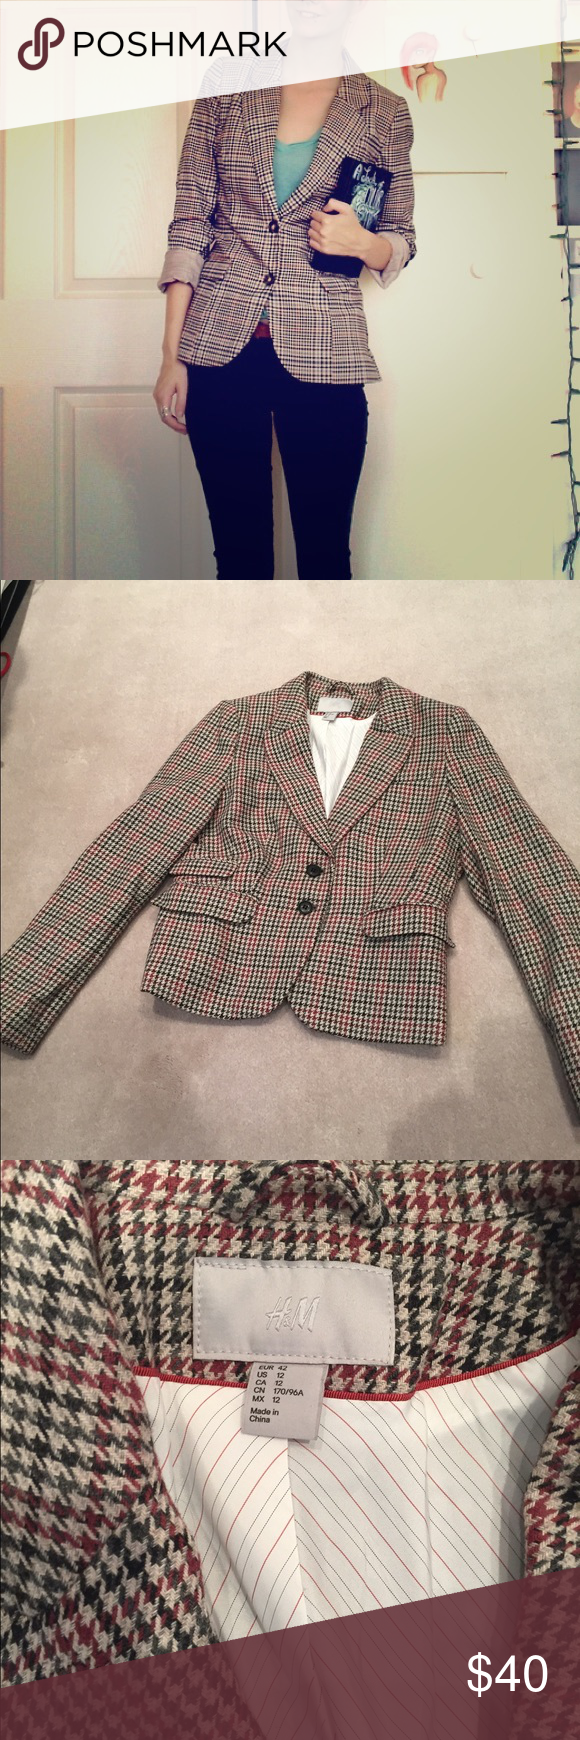 H&M blazer Tan beige gingham blazer with scalloped hem  Red and black accent colors.  Two front pockets and two brown buttons  Never worn  Size 12, fits 8-10. Less on 〽️erc H&M Jackets & Coats Blazers